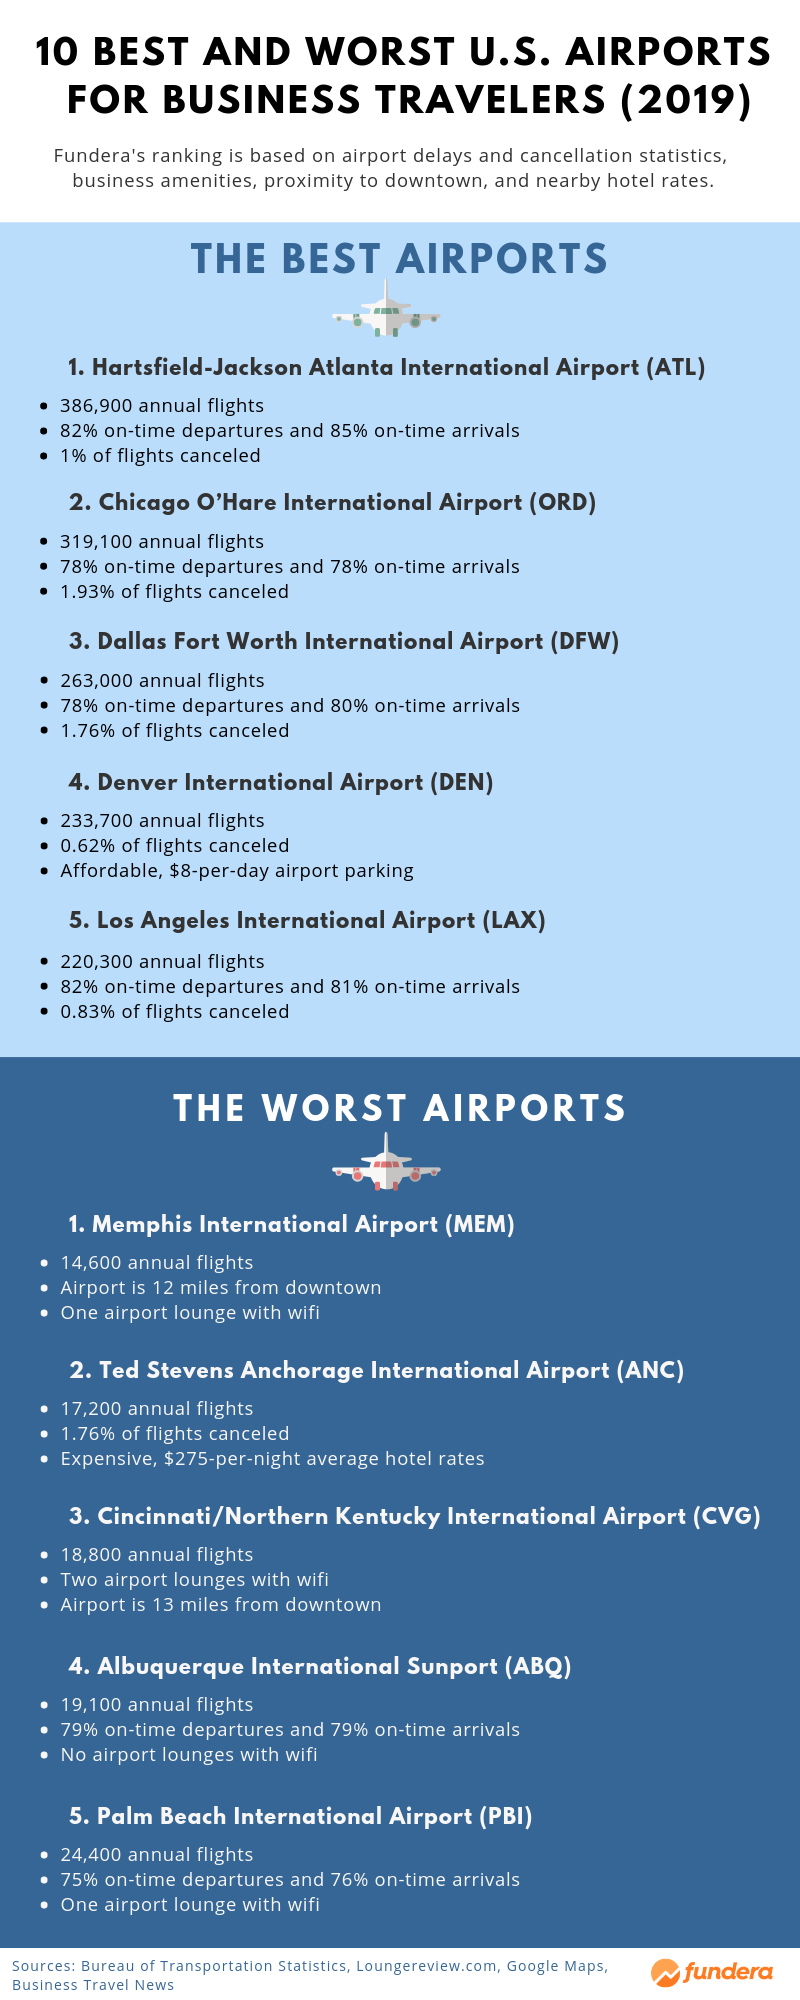 Best and Worst Airports for Business Travelers 2019